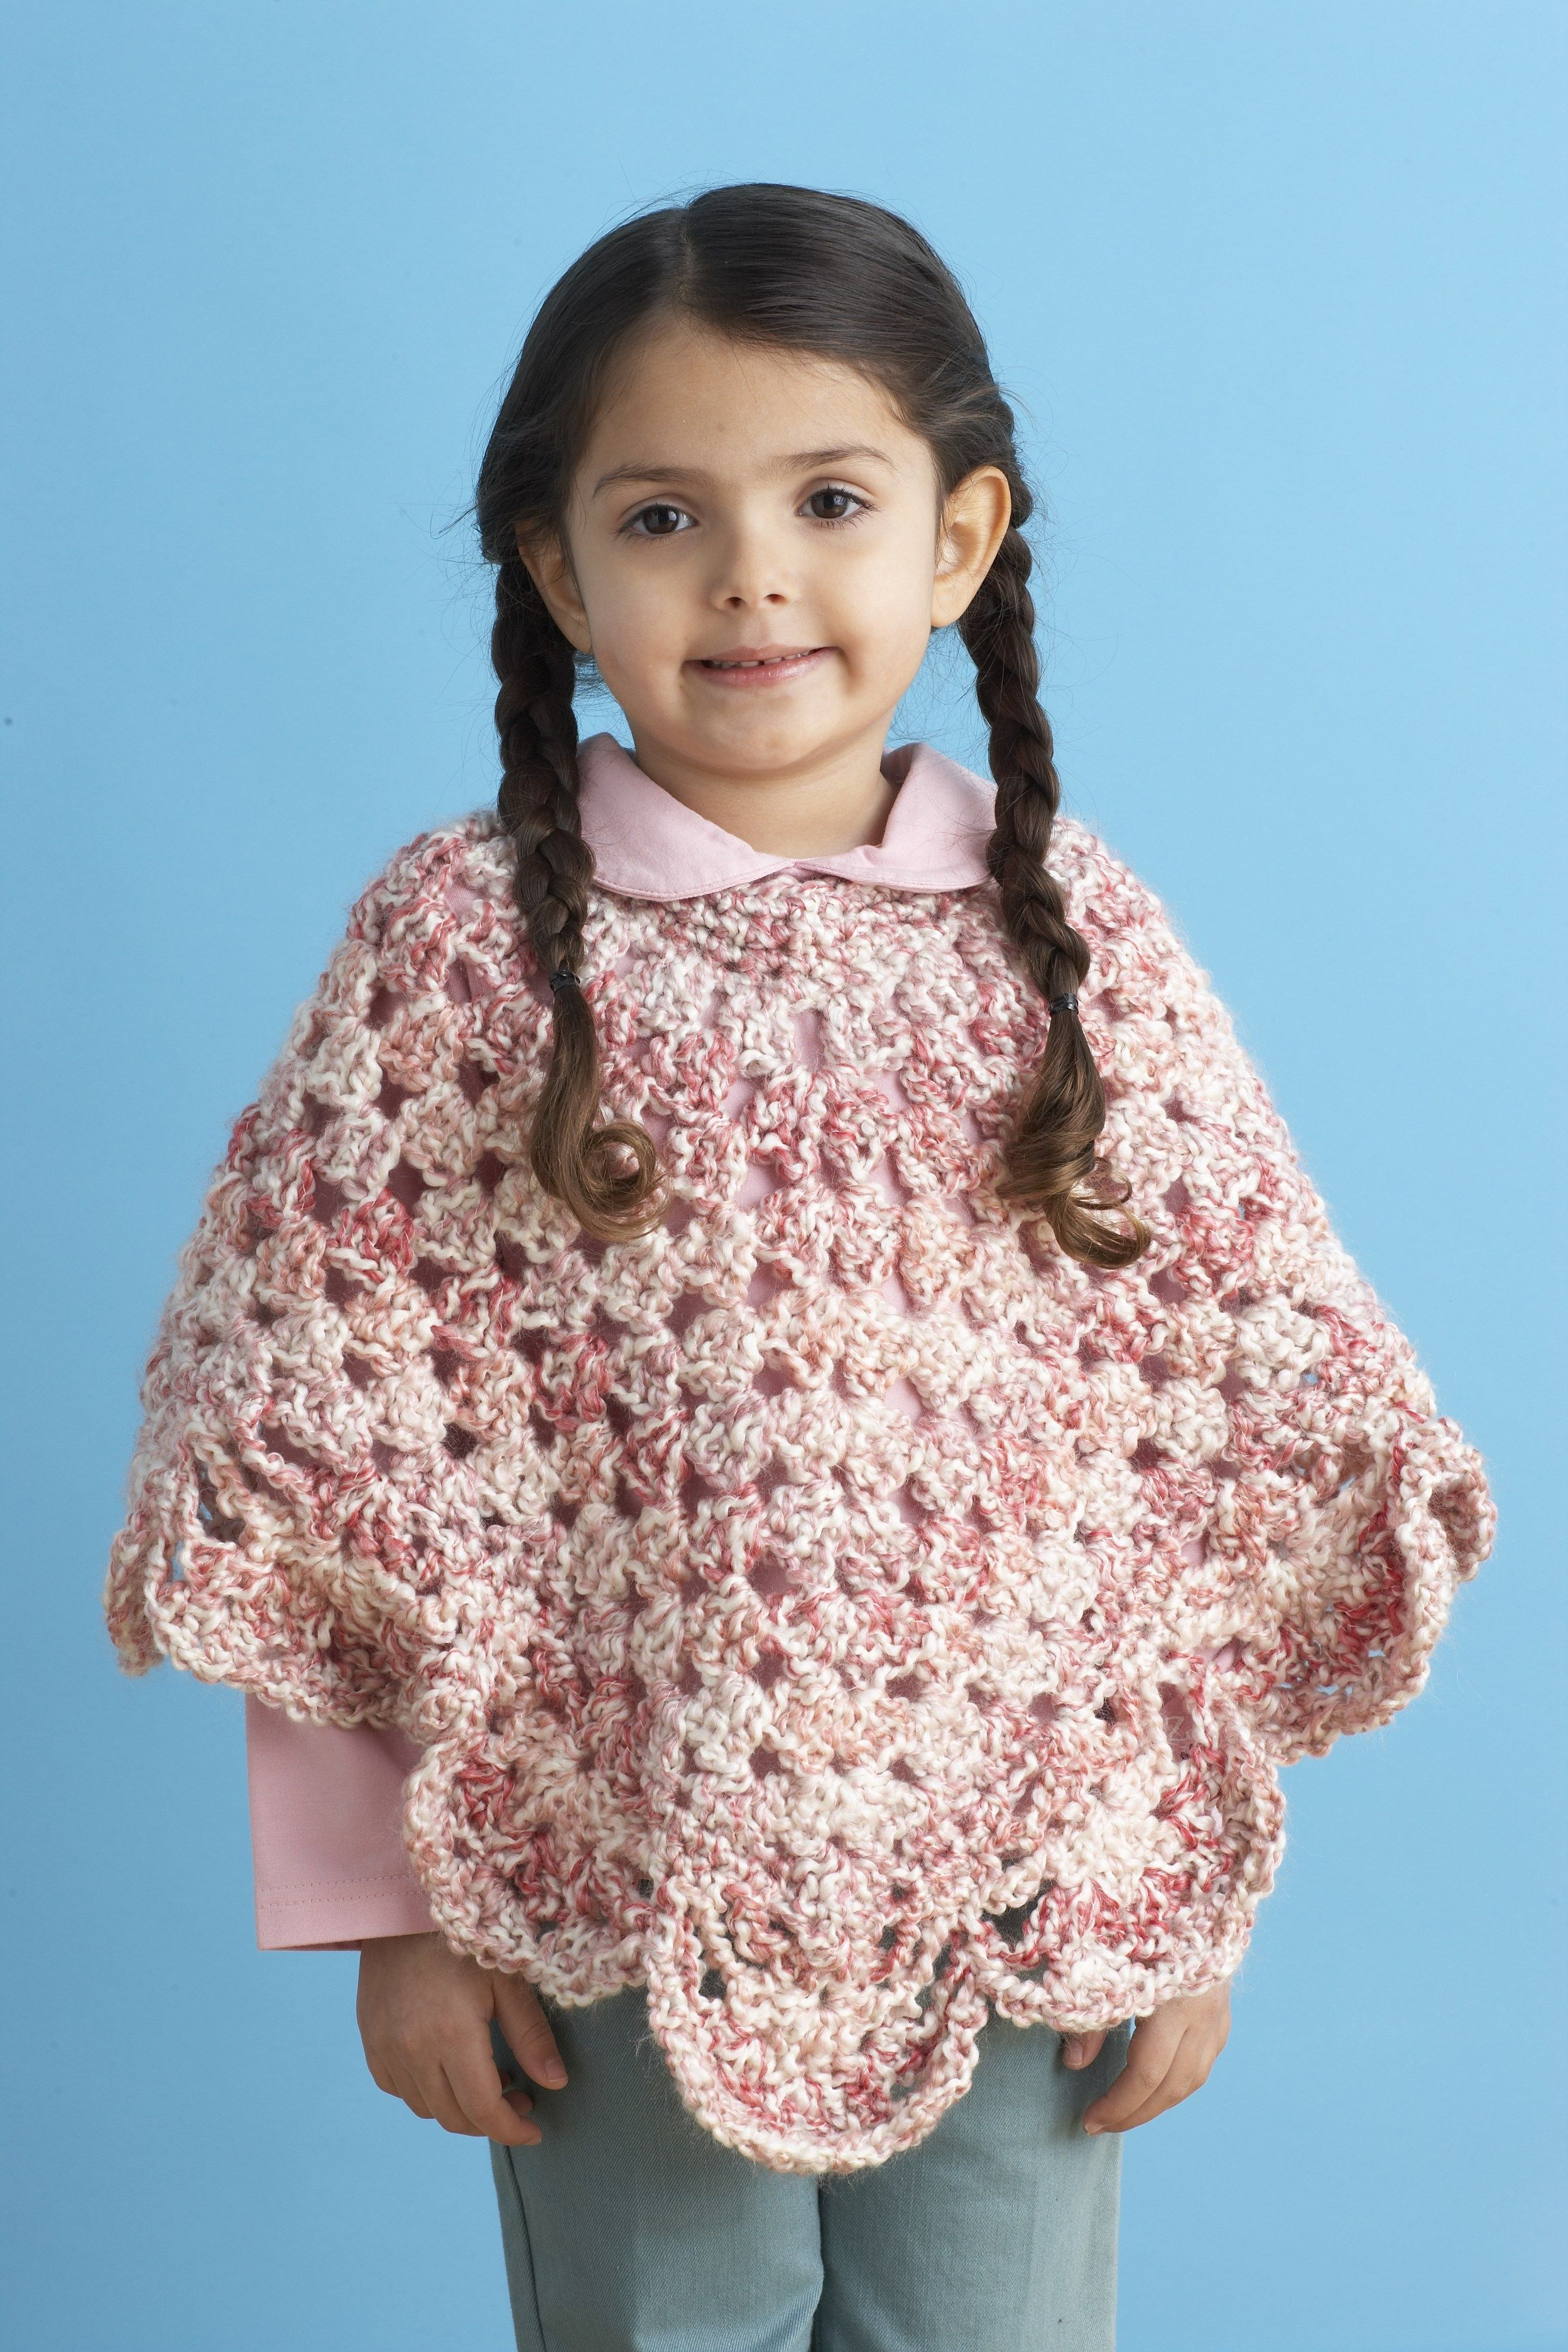 Crochet poncho patterns and styles free online poncho crochet crochet poncho patterns and styles free online poncho crochet patterns patterns preceded by an plus dt1010fo